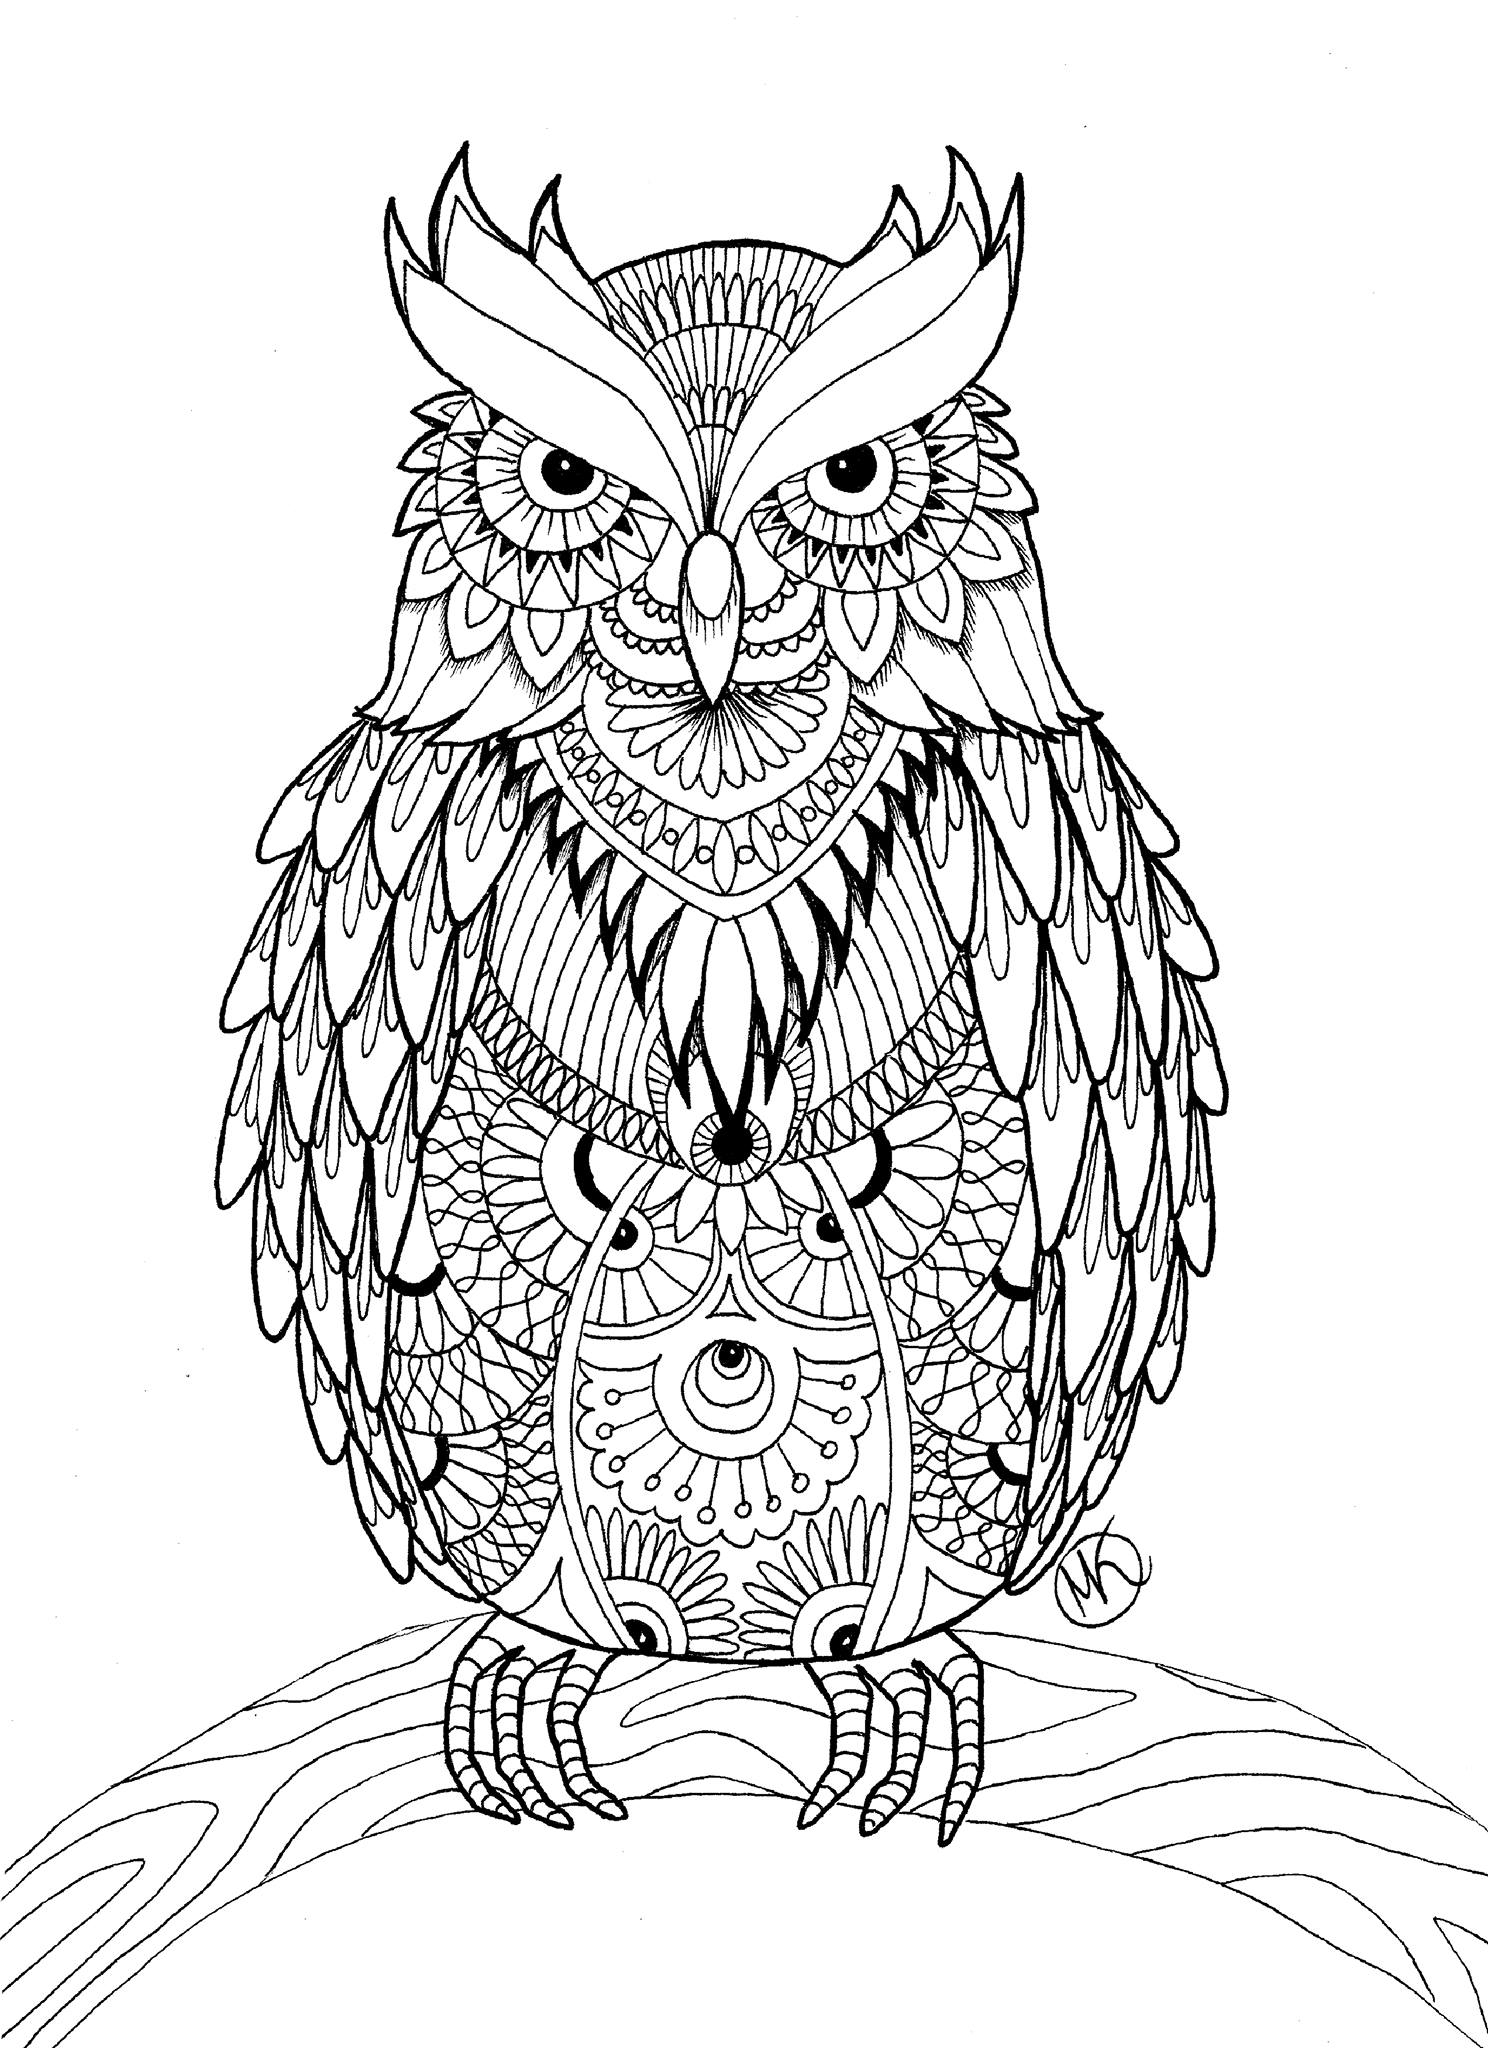 owl coloring images cute owl coloring page free printable coloring pages owl images coloring